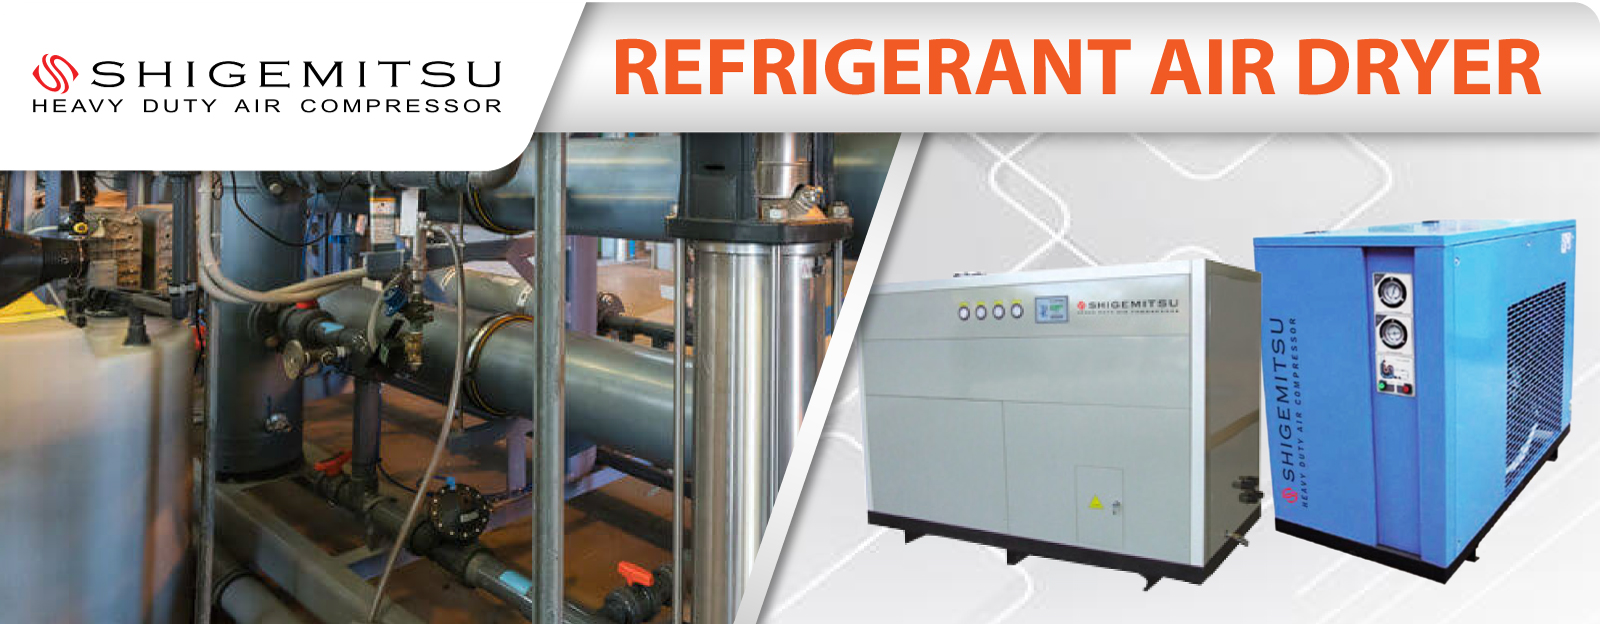 Banner REFRIGERANT AIR DRYER